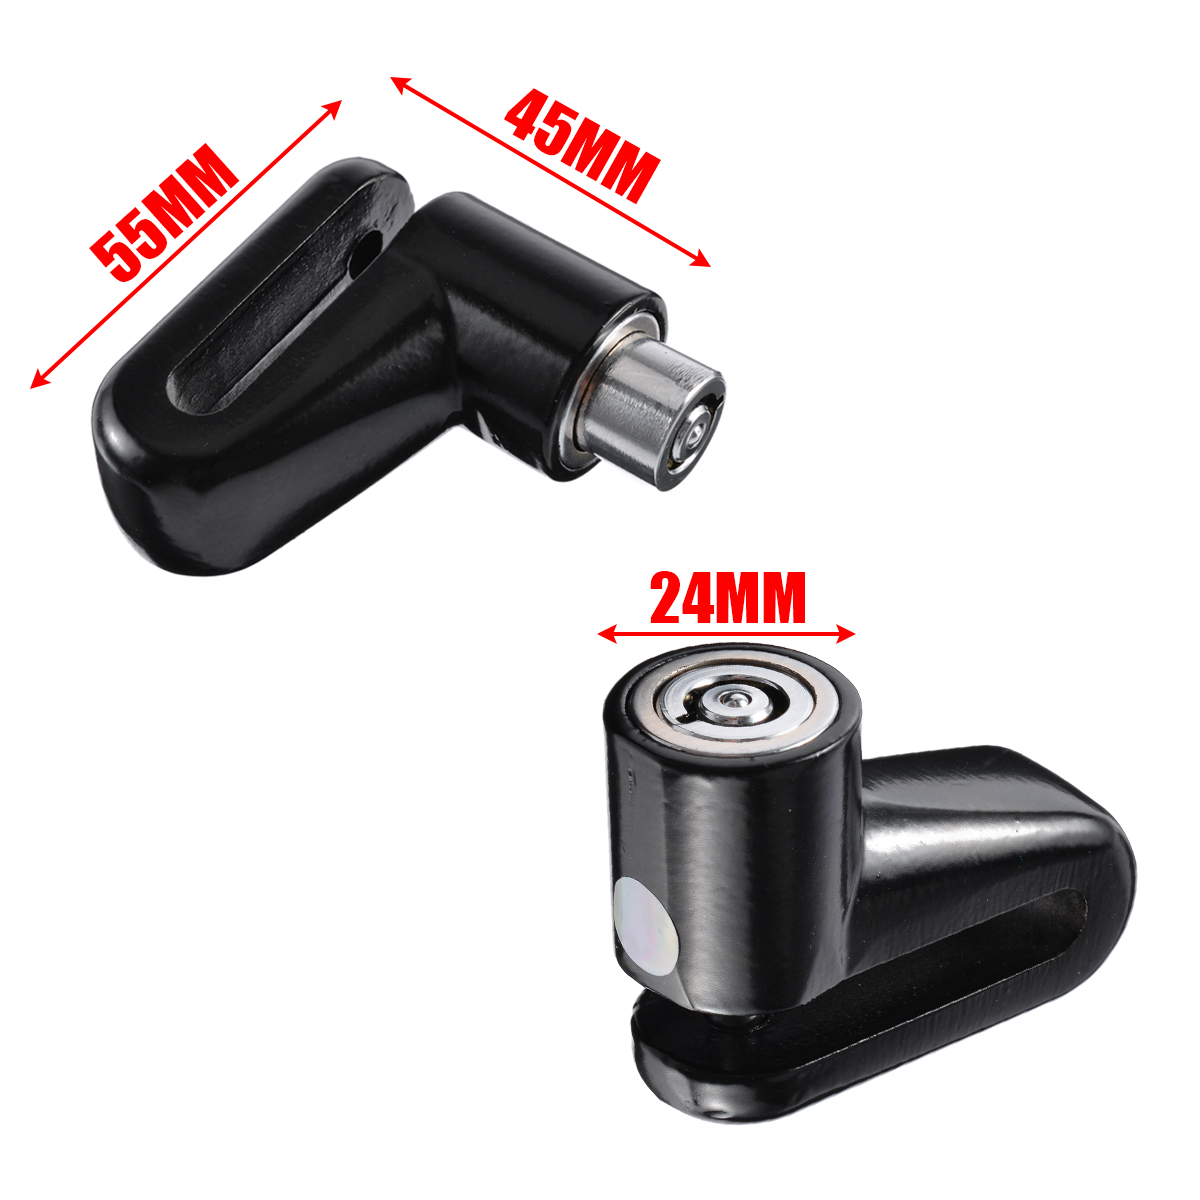 1PC Heavy Duty Motorbike Disk Brake Rotor Lock Security Anti-theft Solid Locks For Moped Scooter Electromobile Bicycle